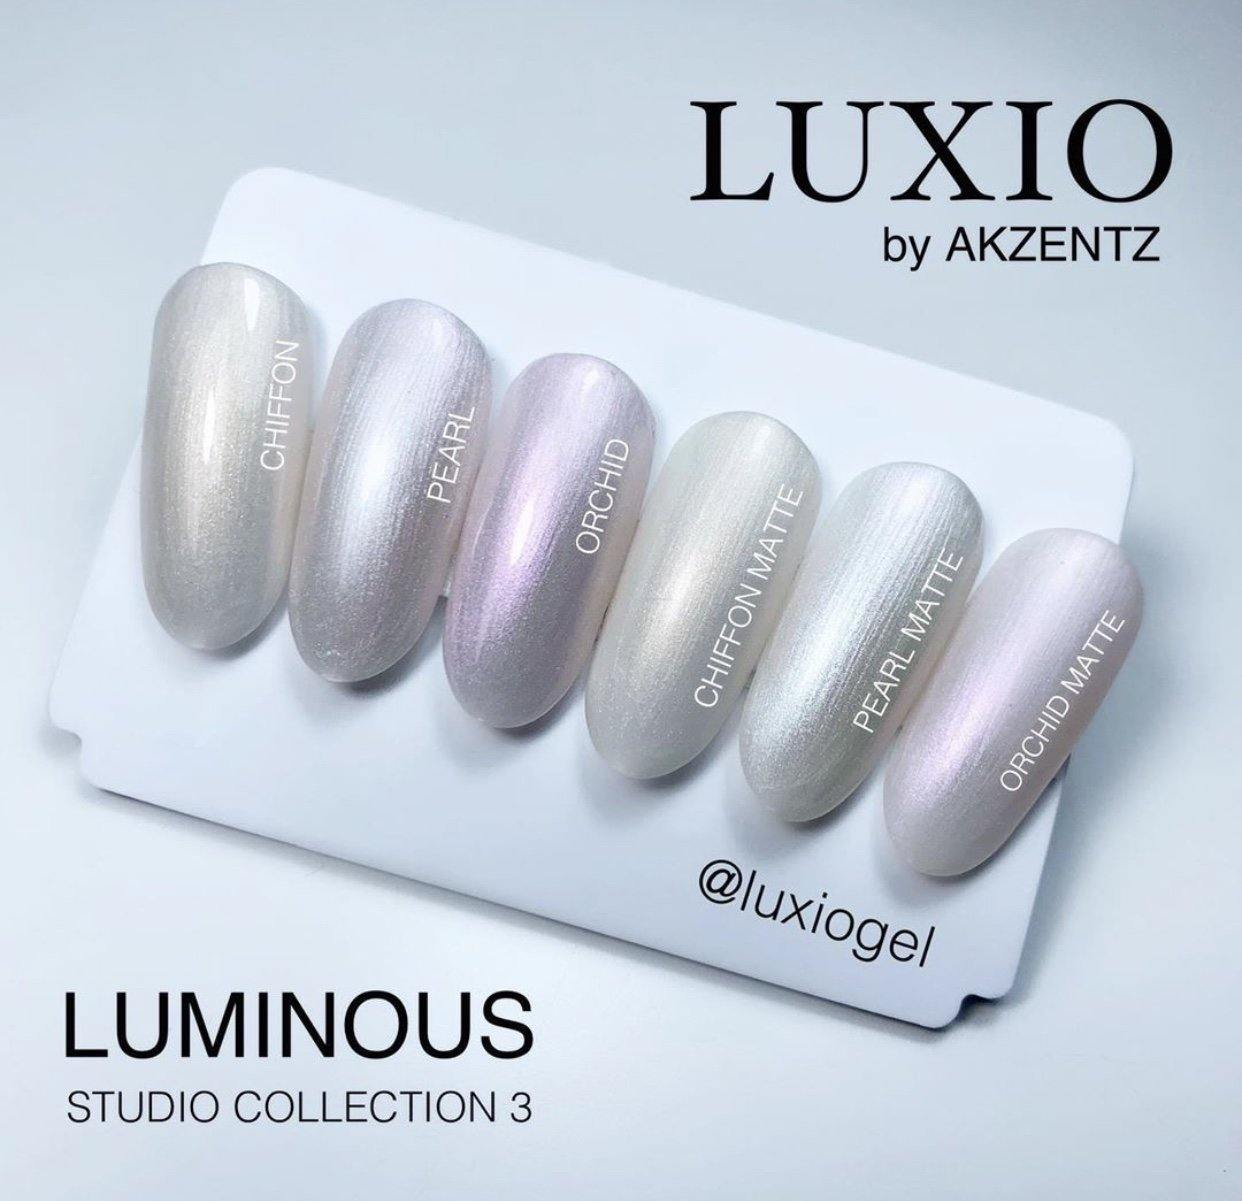 Full Size - Luxio Studio N°3 Luminous Collection (15ml size - all 3 colors)